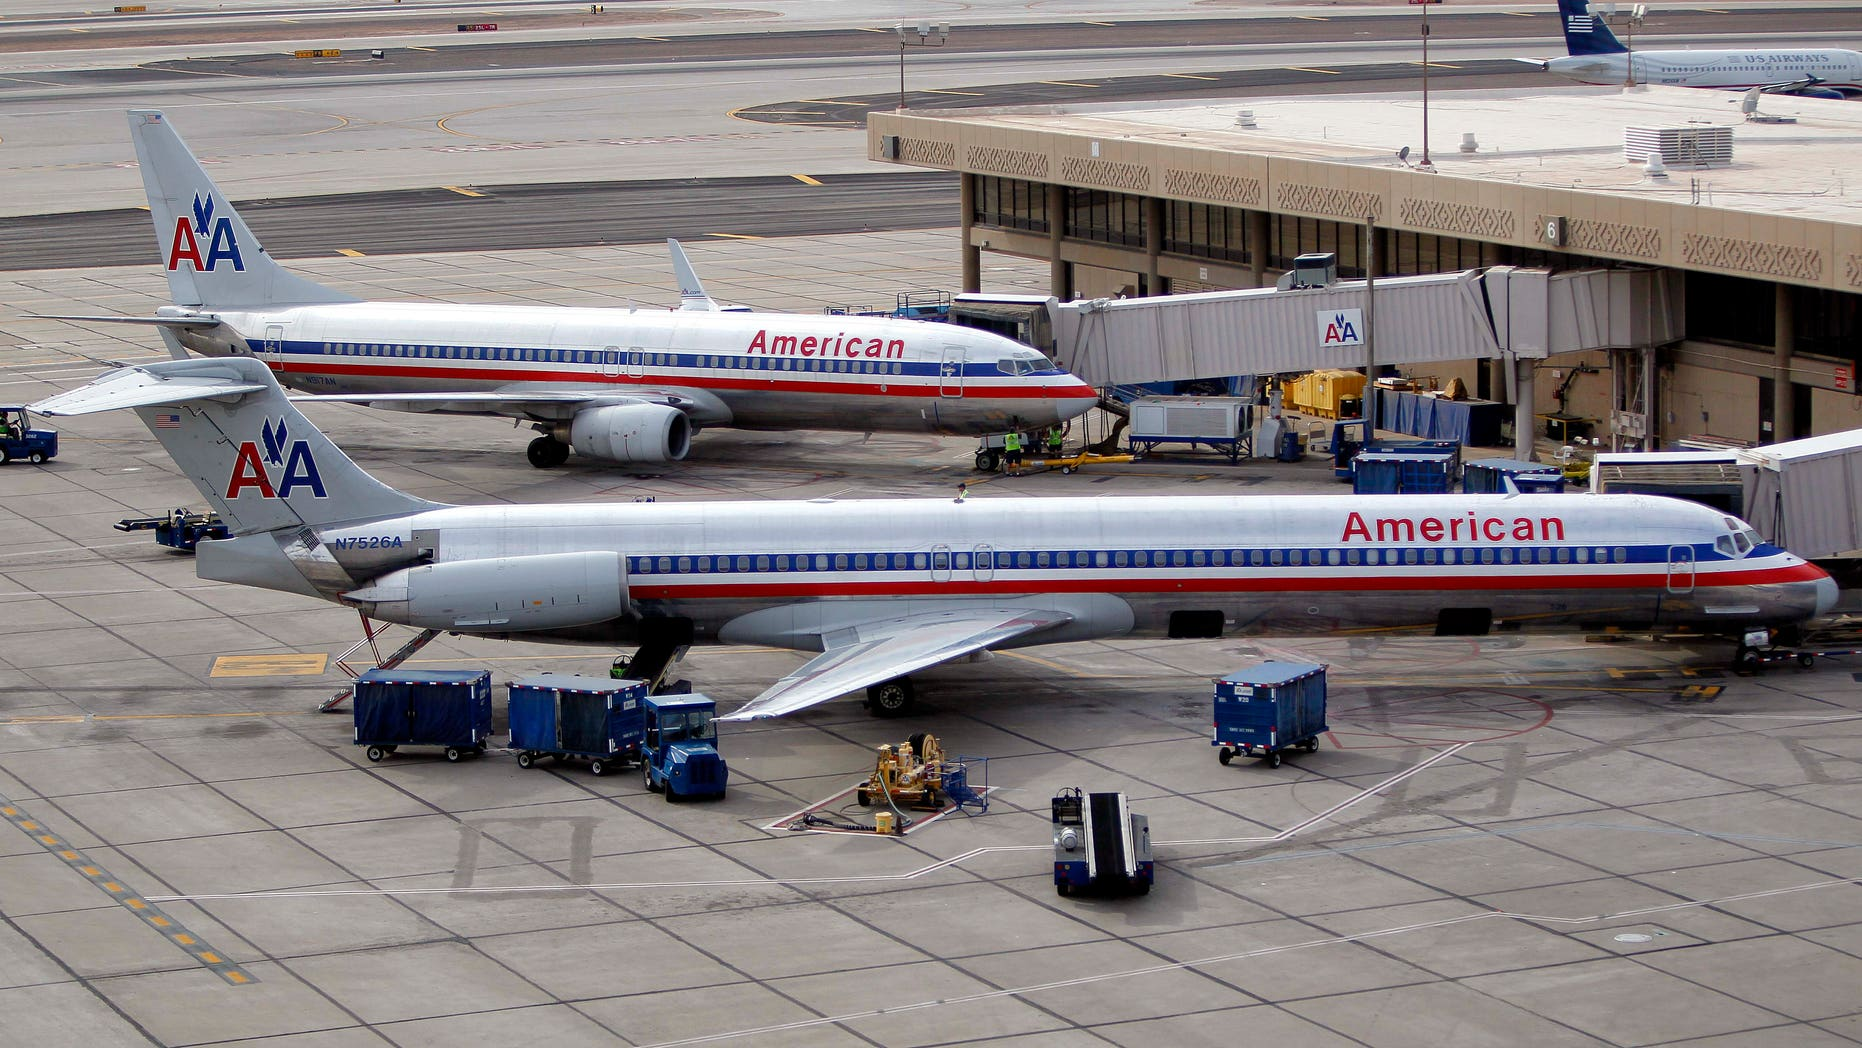 November 29: American Airlines' jets sit at the gate at Sky Harbor International Airport in Phoenix. American Airlines and its parent company are filing for Chapter 11 bankruptcy protection as they seek to cut costs and unload massive debt built up by years of high jet fuel prices and labor struggles.